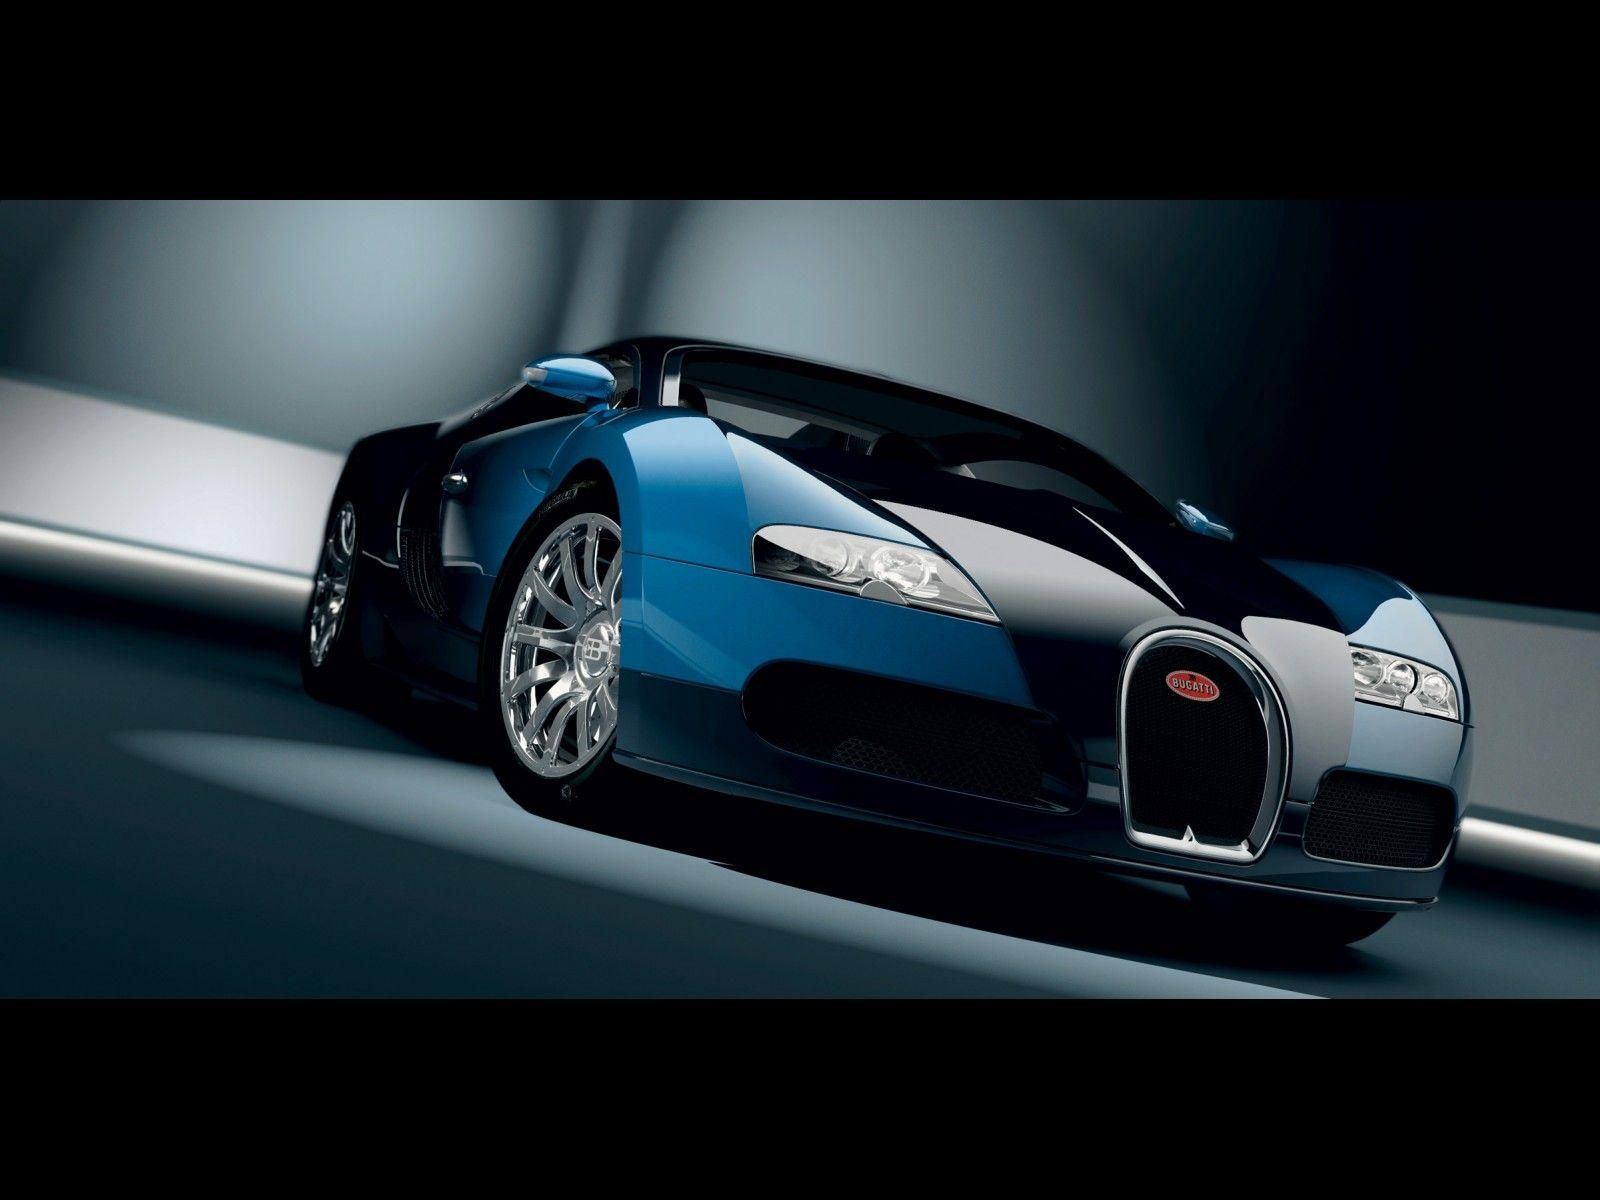 Pin By Sport Car On Bugatti In 2021 Cool Wallpapers Cars Cool Car Wallpapers Hd Bugatti Wallpapers